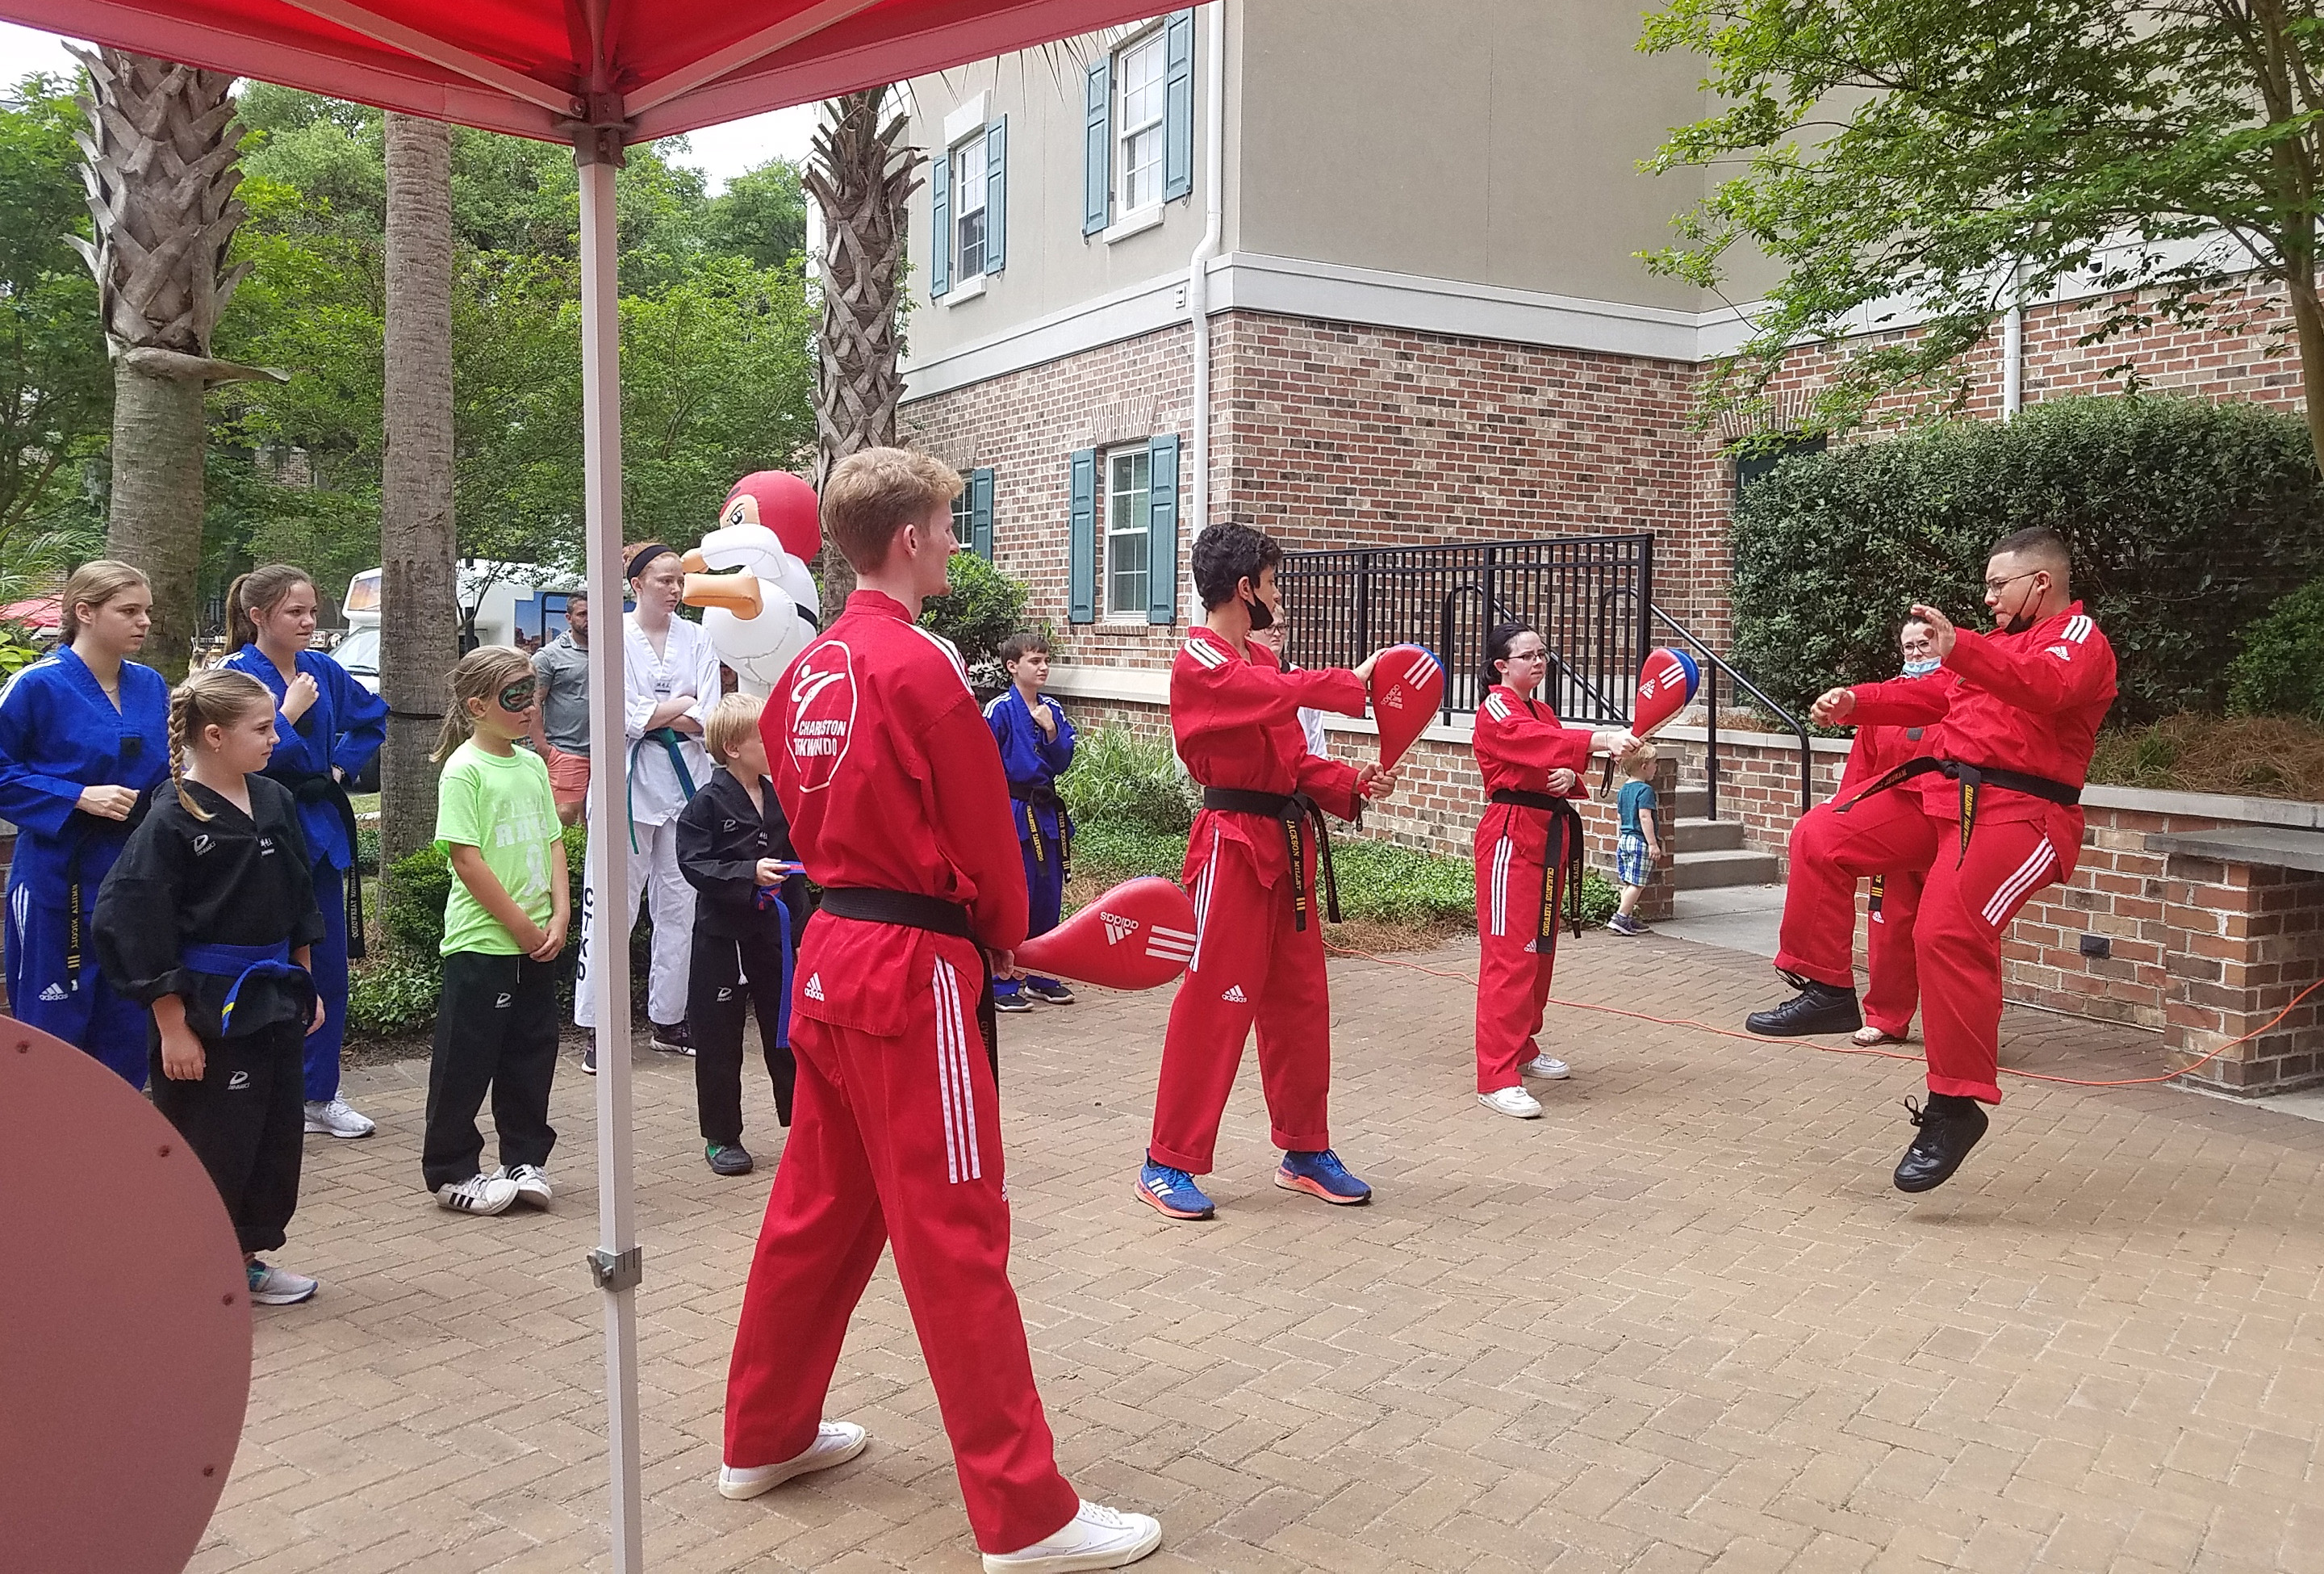 Suzanne Detar - Charleston Taekwondo students performed multiple demonstrations throughout the day.